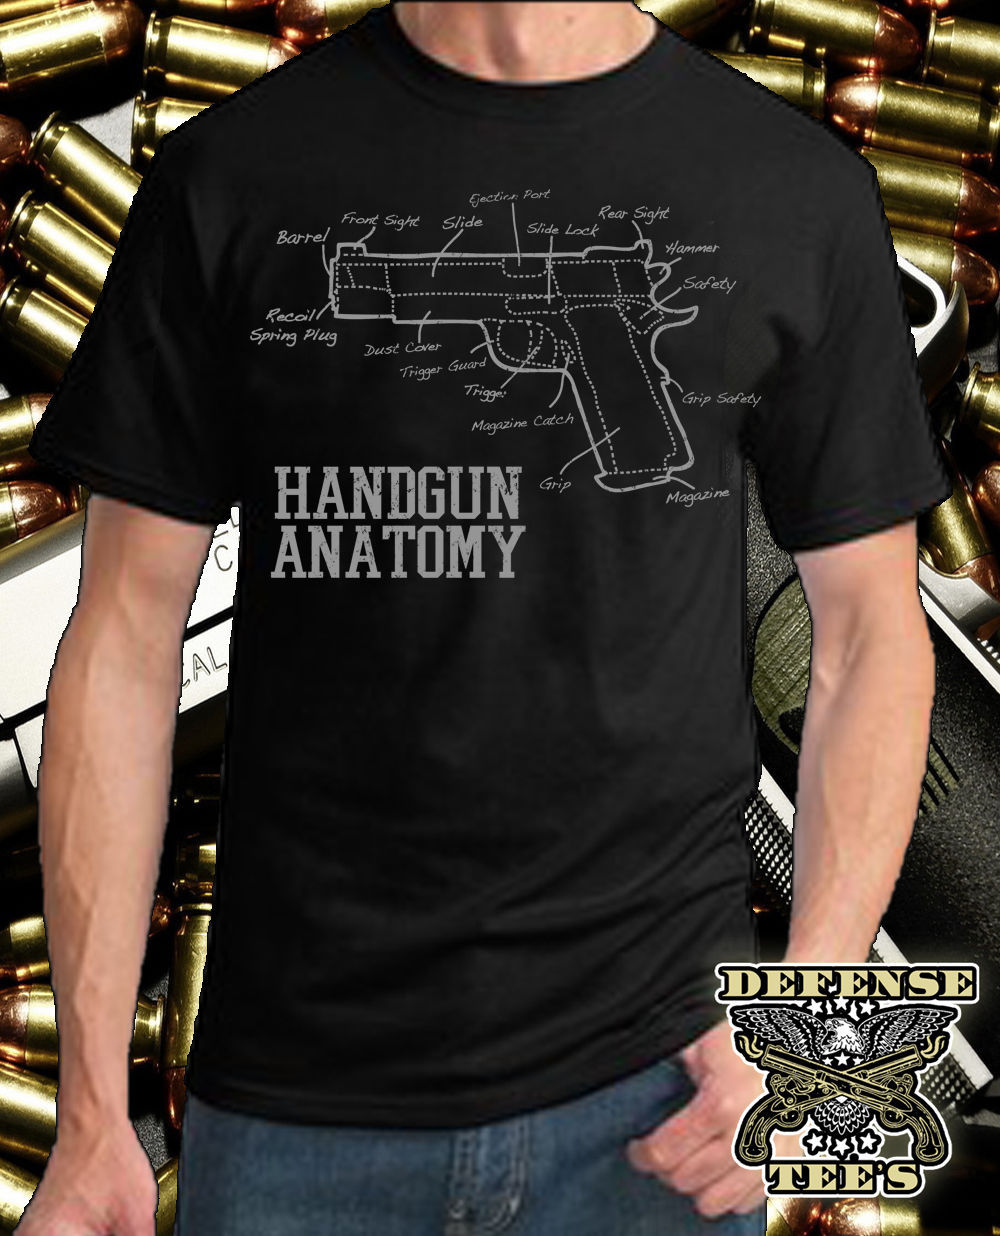 2019 Newest 100% Cotton Brand New T-Shirts Pistol Shirt Nra T-Shirt 2Nd Amendment Come For Mine Bring Yours Handgun T-Shirt image